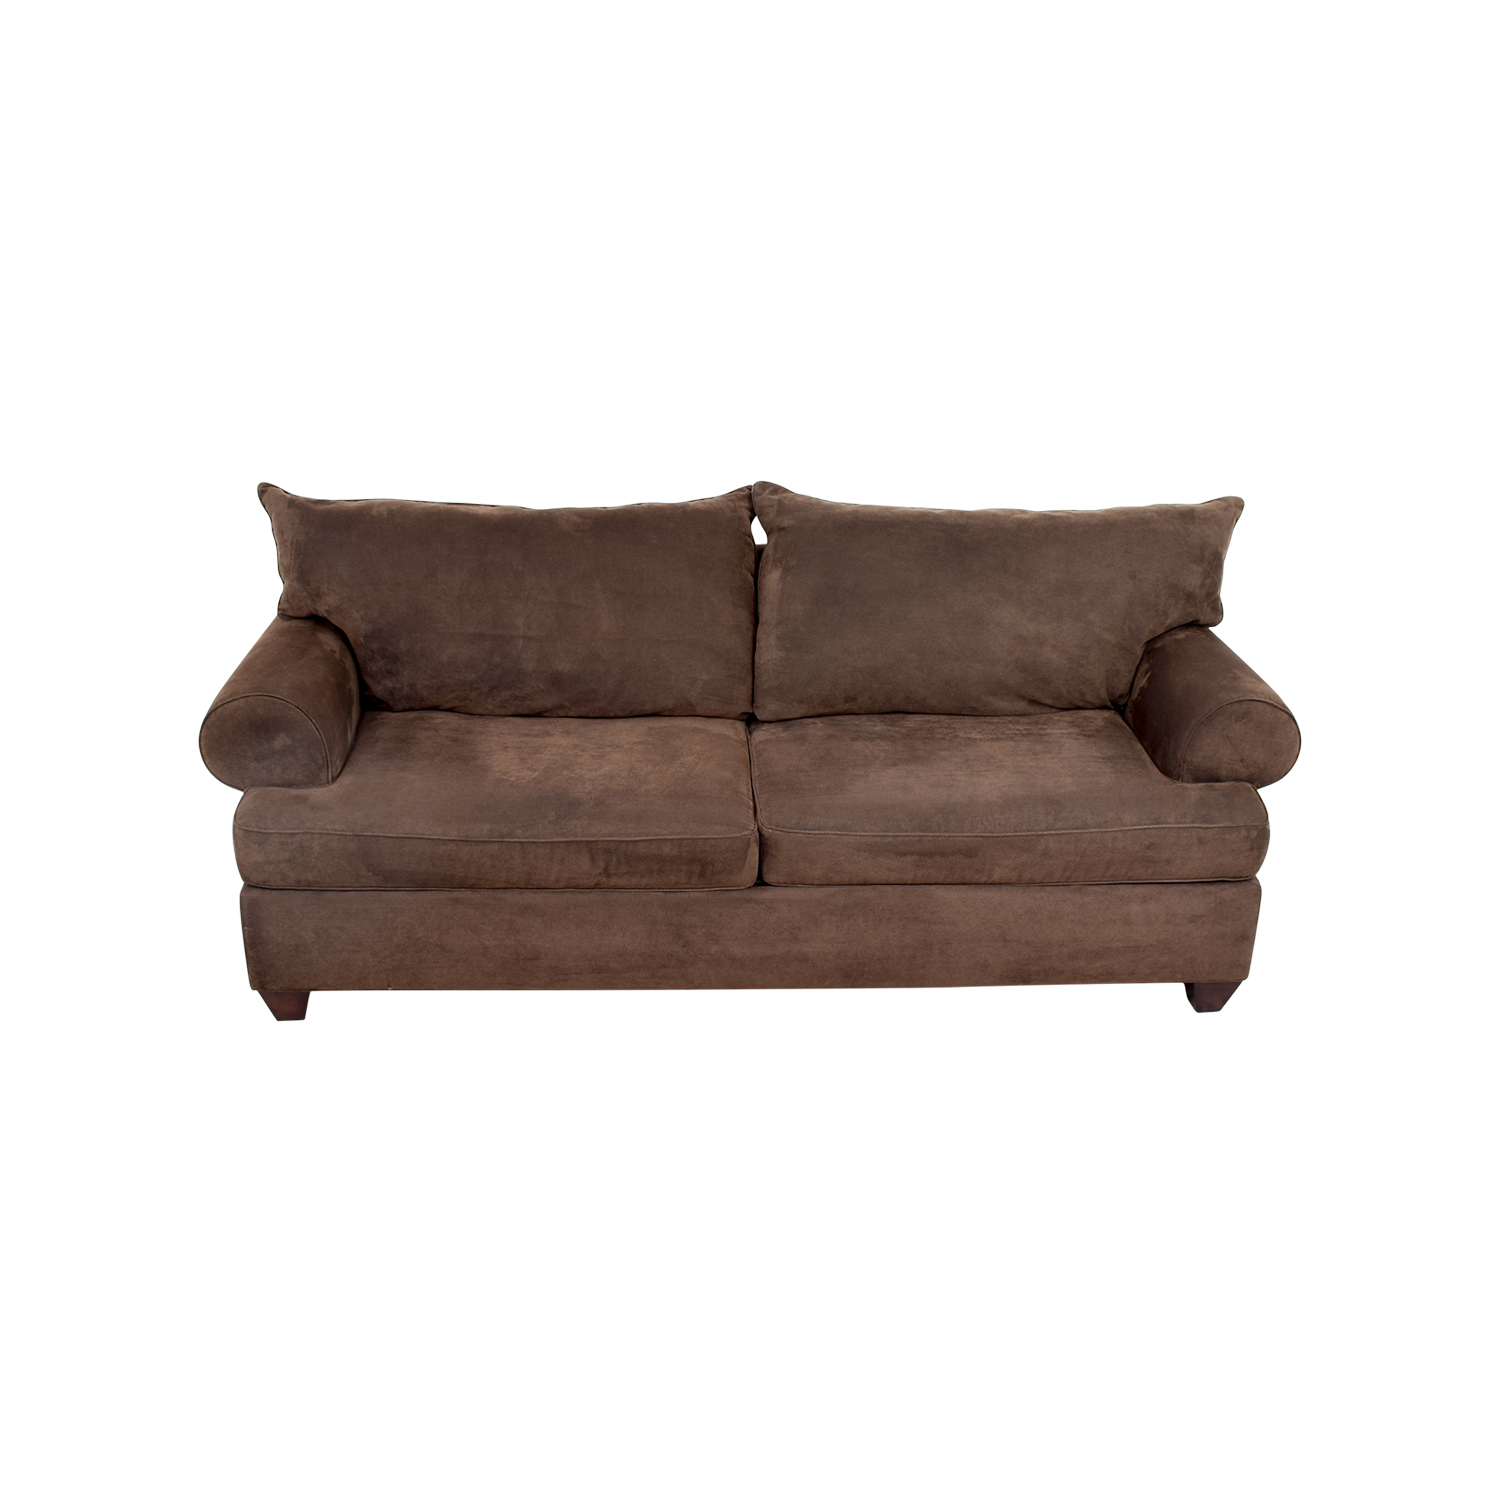 Brown Corduroy Two-Cushion Couch nyc